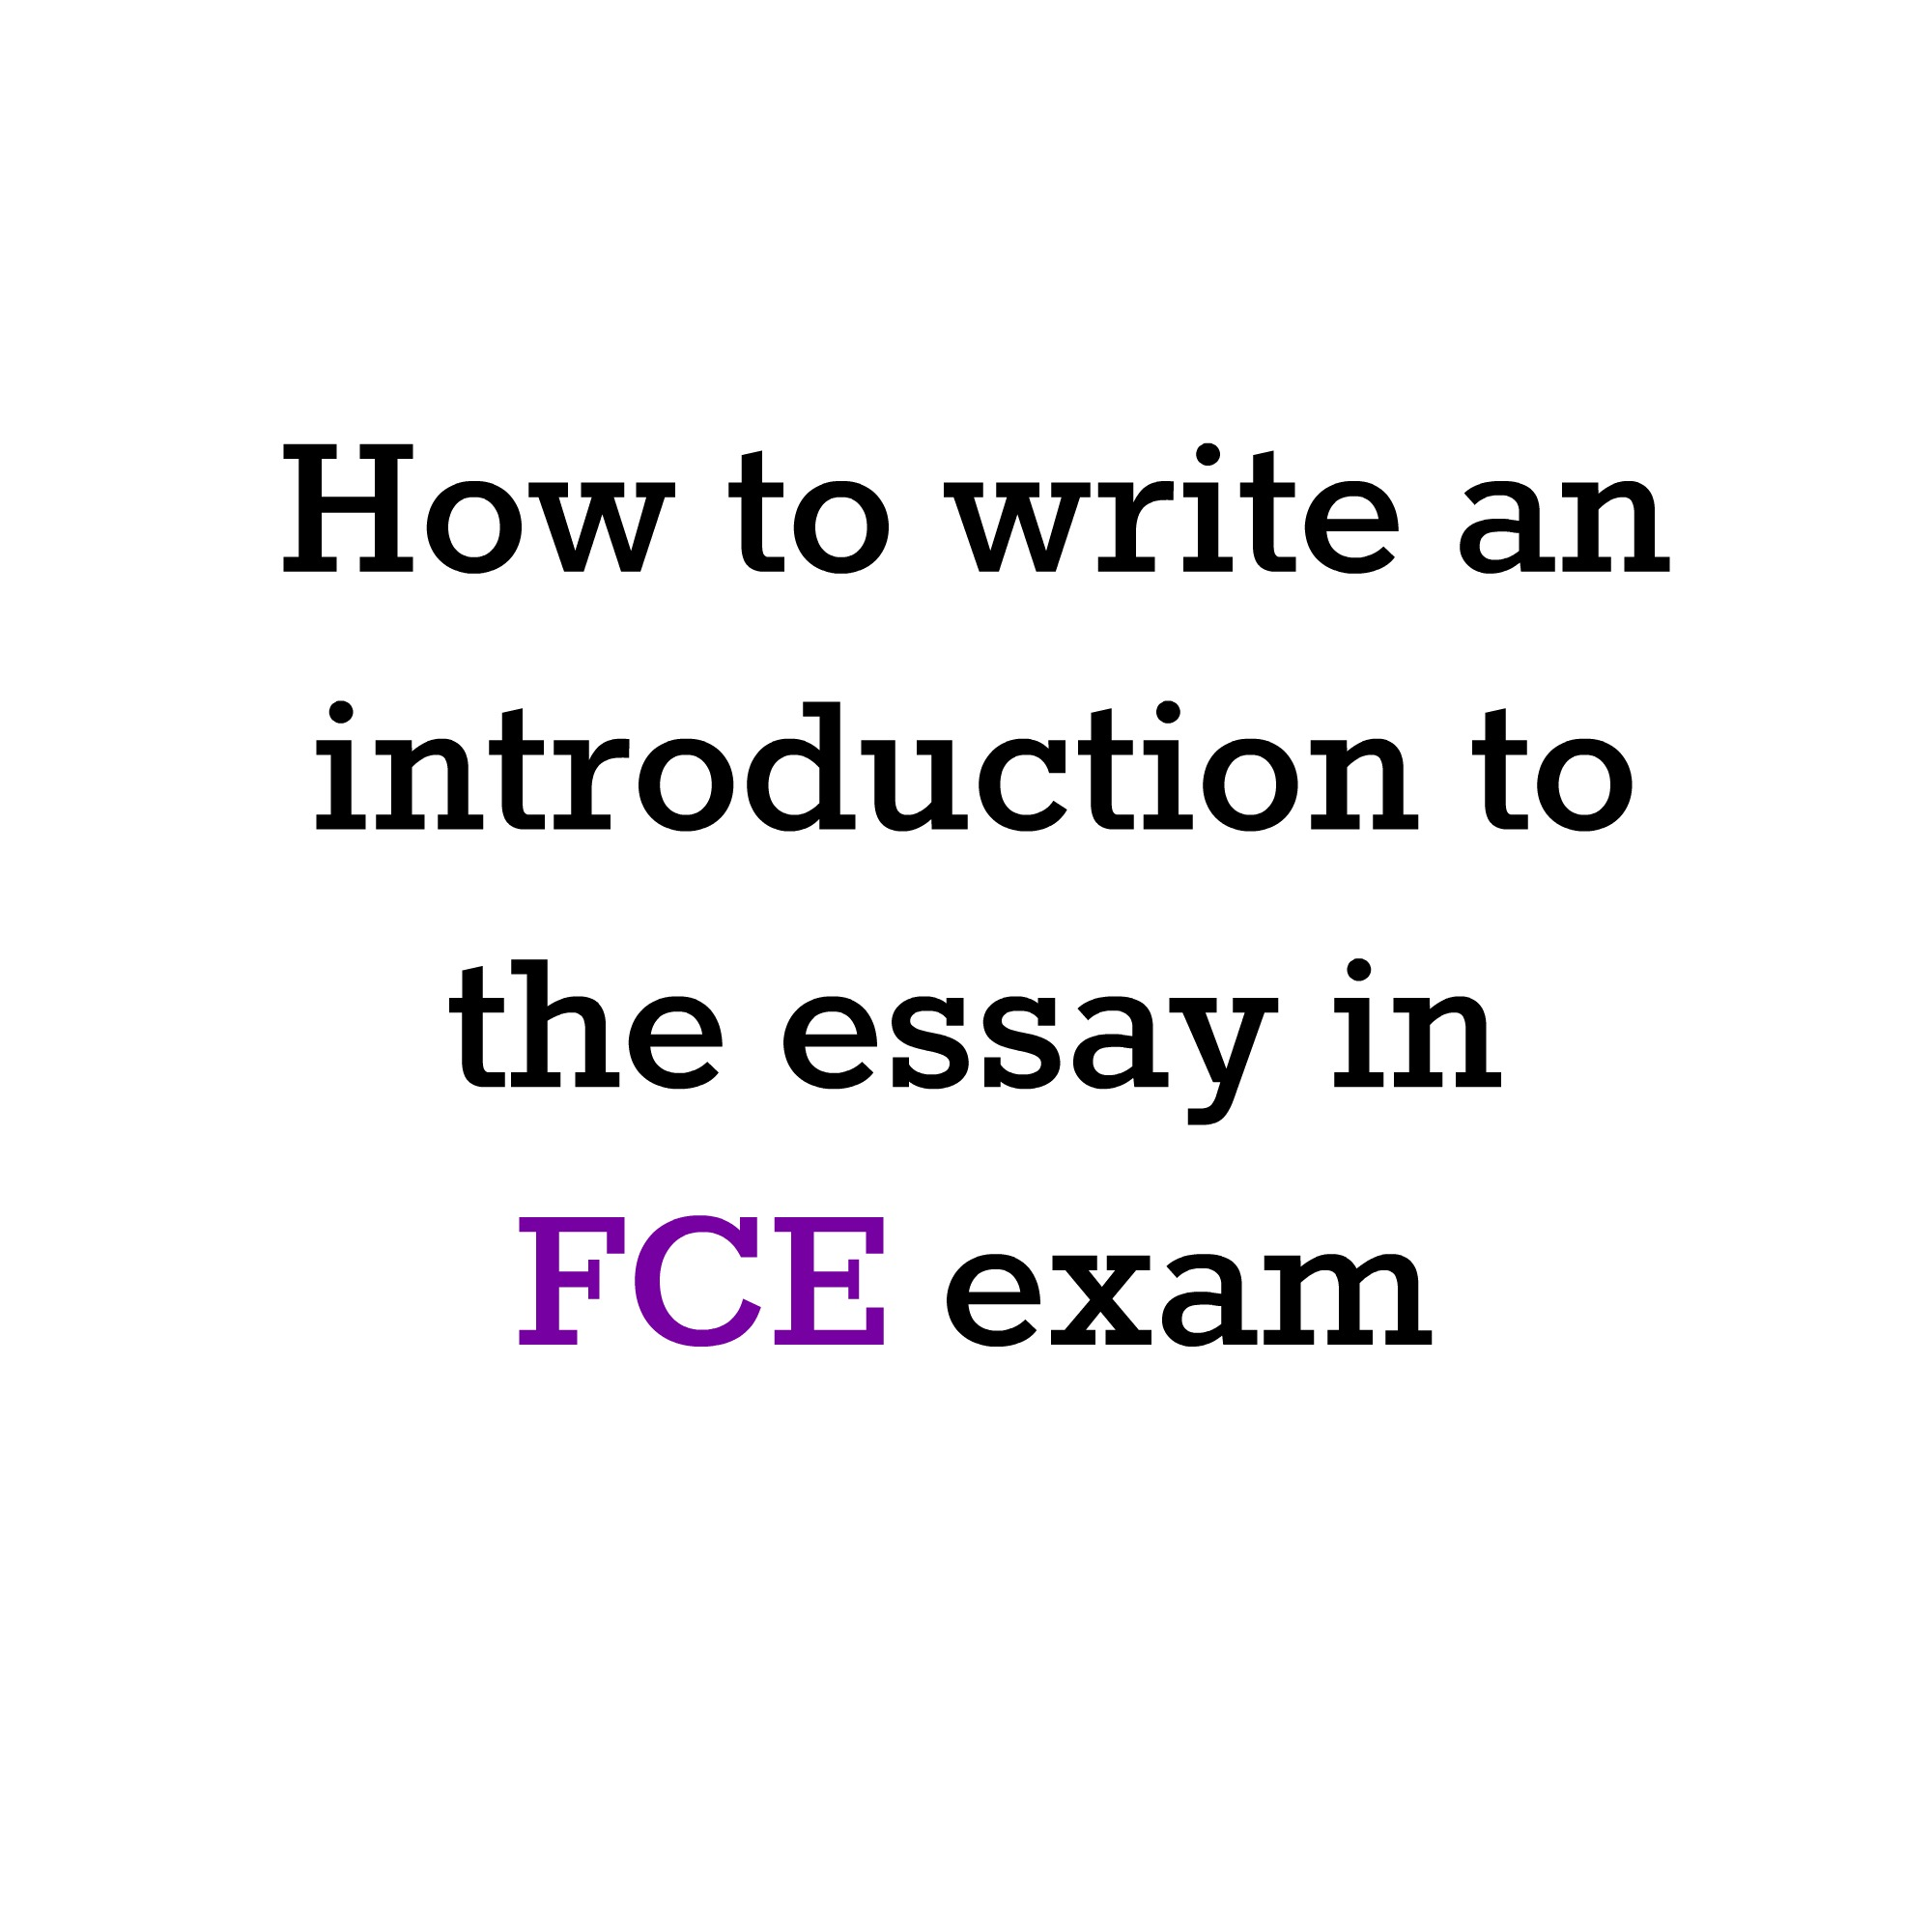 013 How To Write An Introduction The Essay In Exam Fast Fascinating Academic English Full